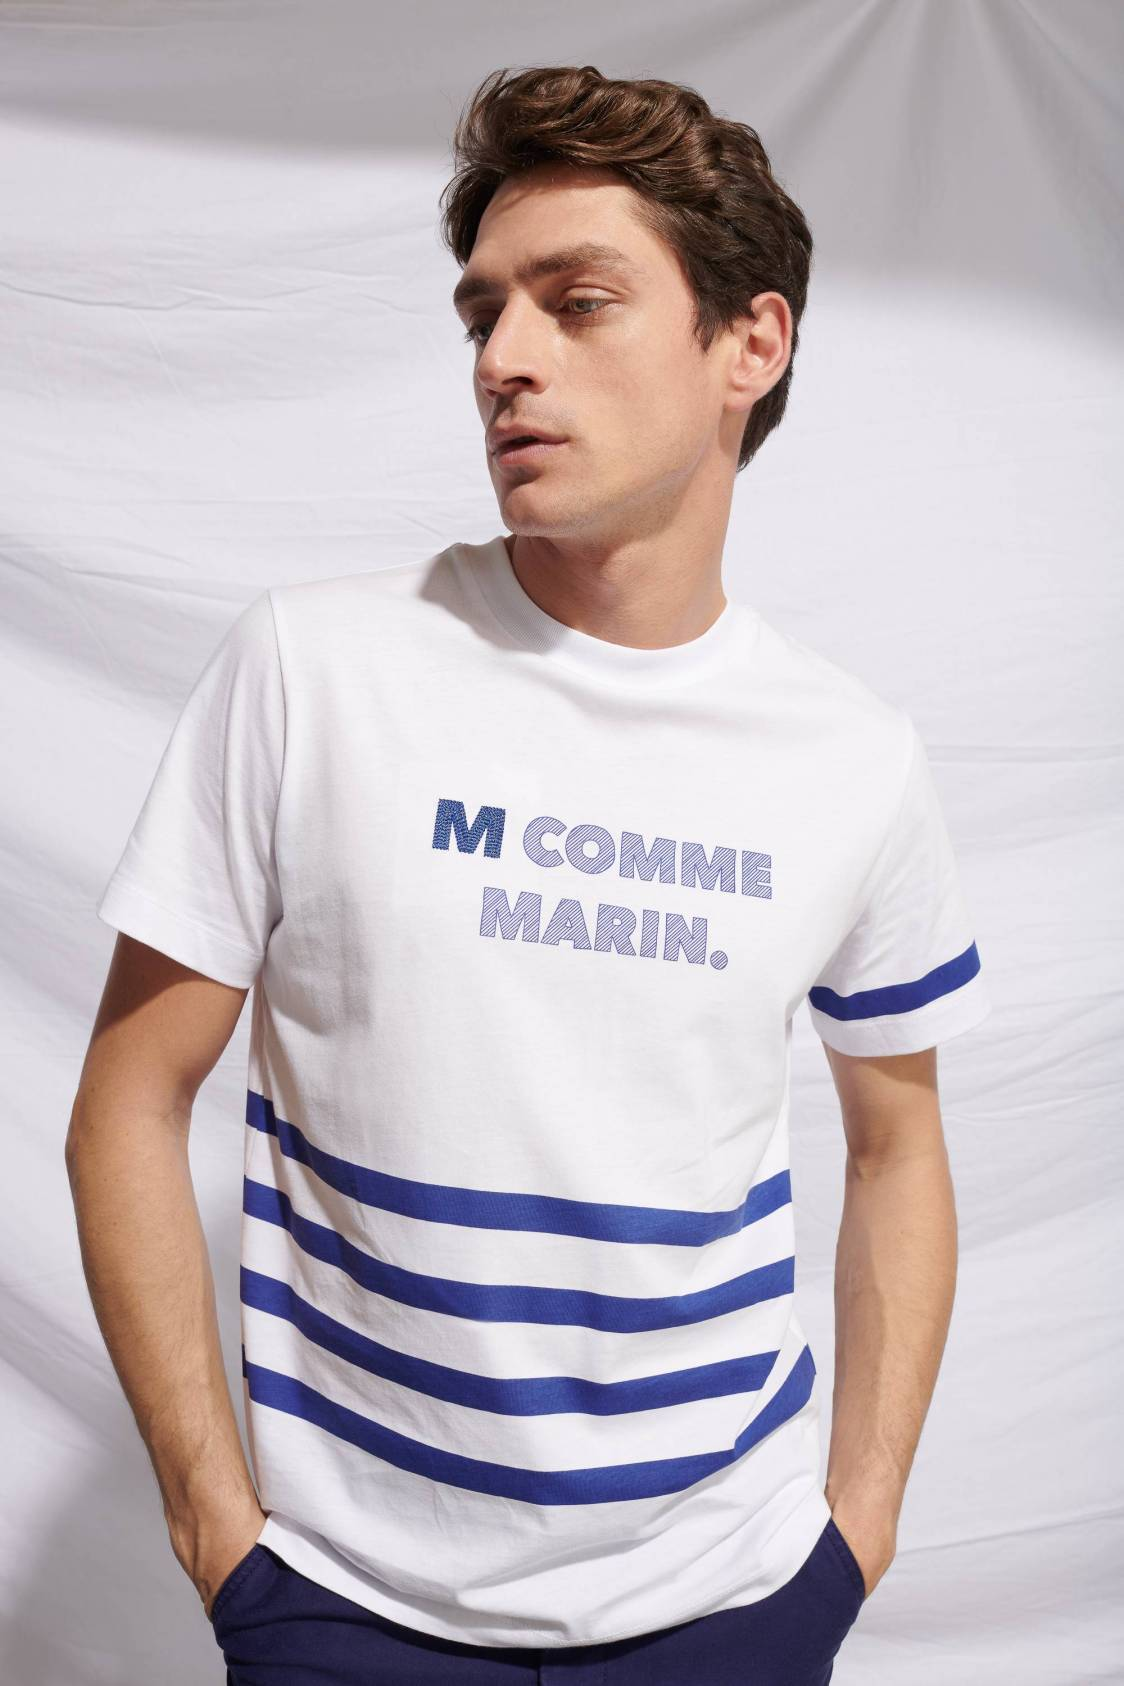 T-Shirt M comme Marin